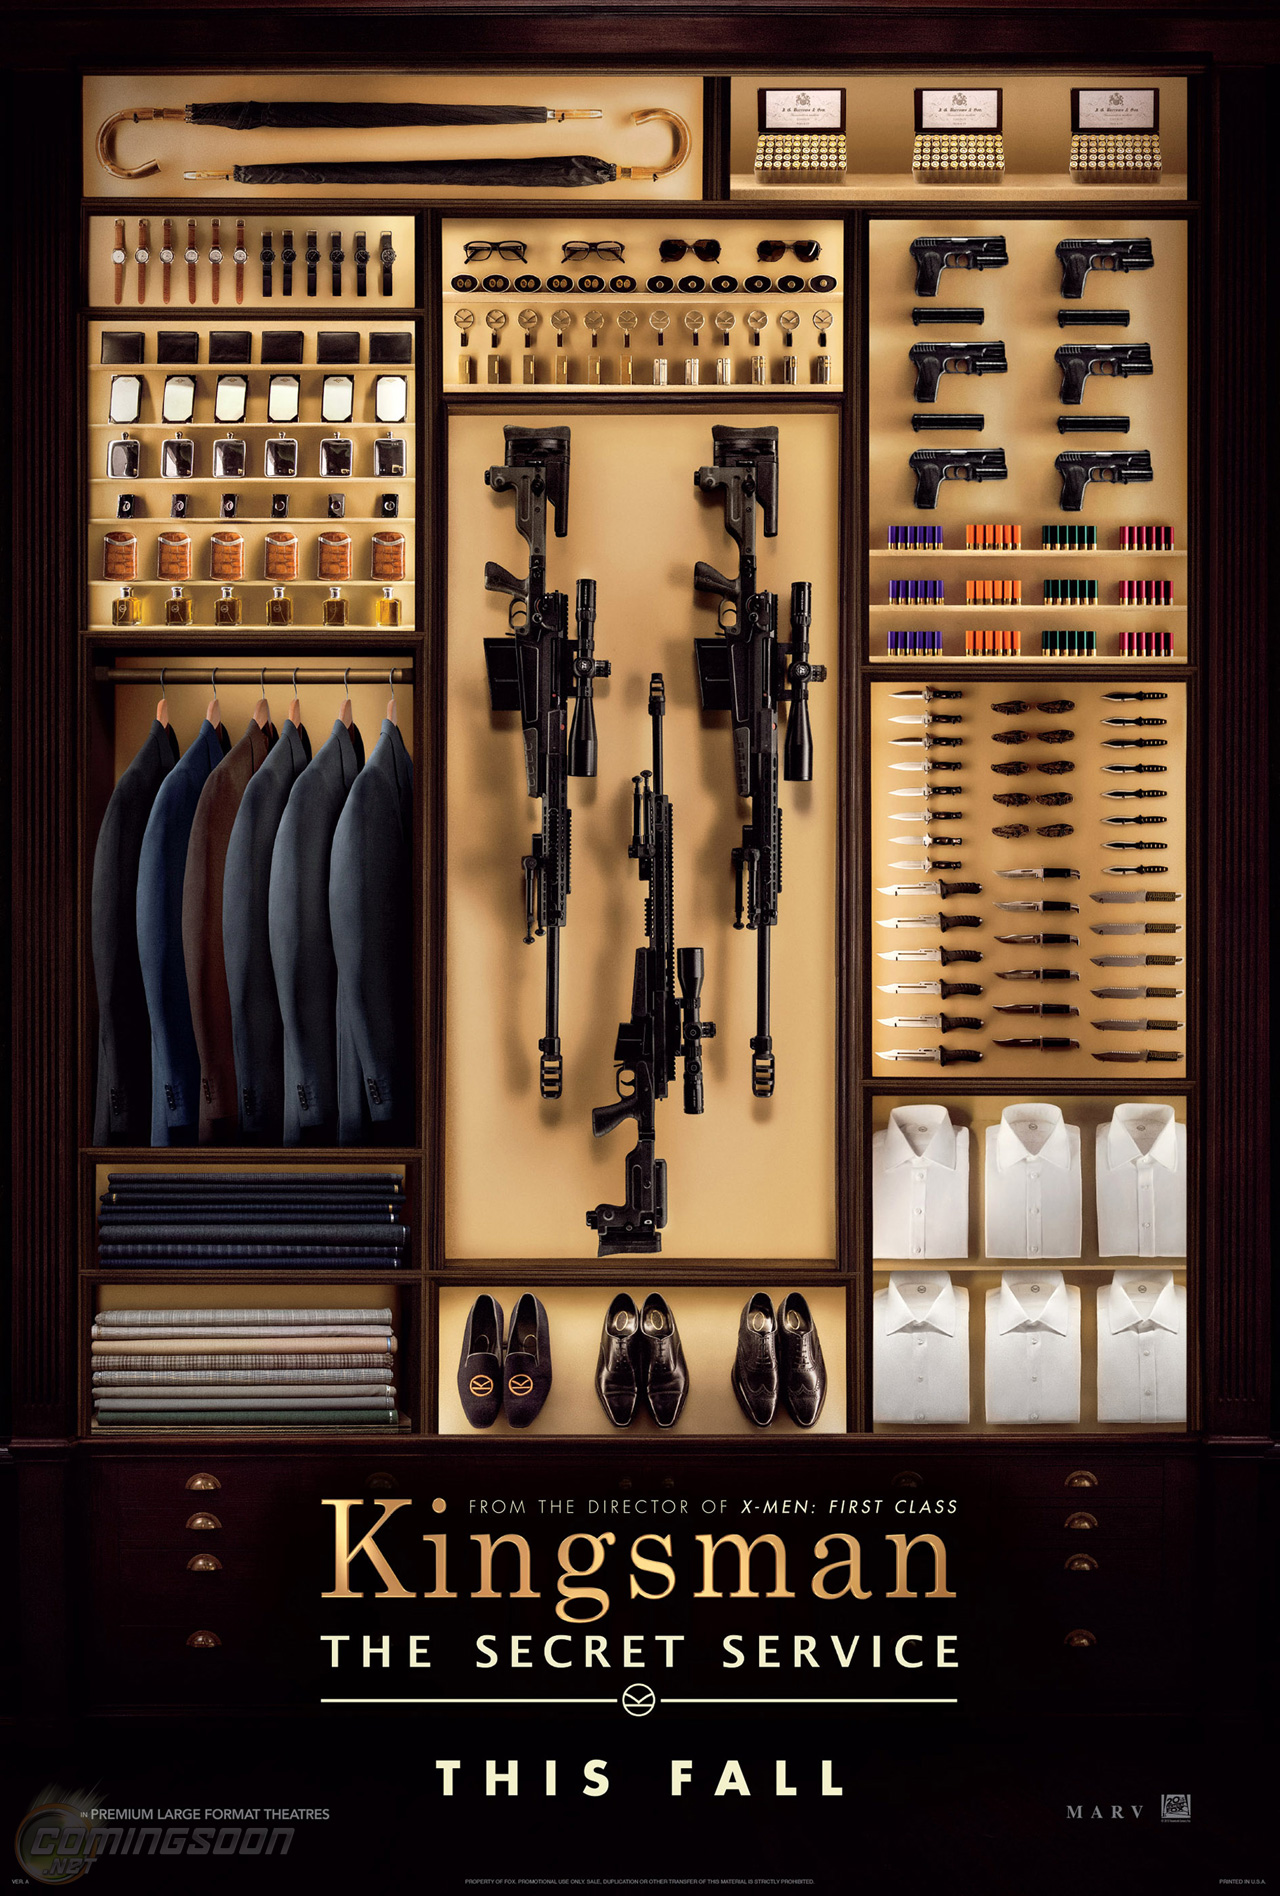 Colin Firth Is a Super Spy in Kingsman The Secret Service First Trailer Colin Firth Is a Spy in Kingsman: The Secret Service First Trailer